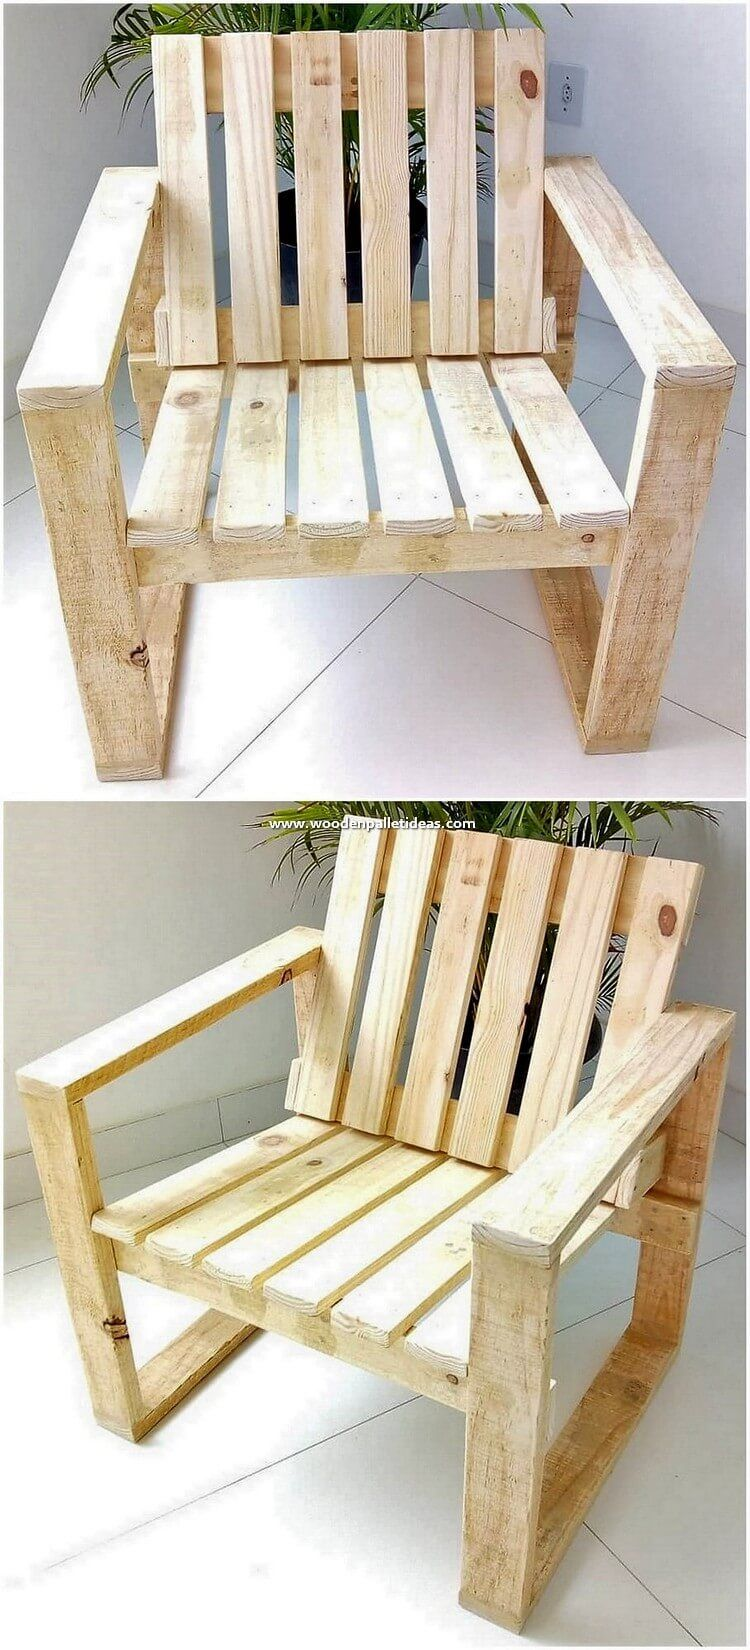 Wondrous DIY Pallet Ideas for Your Weekend Home Project is part of Wood pallet crafts - As we do start making the list of the awesome creations of the wood pallet ideas then wide range of designs and options